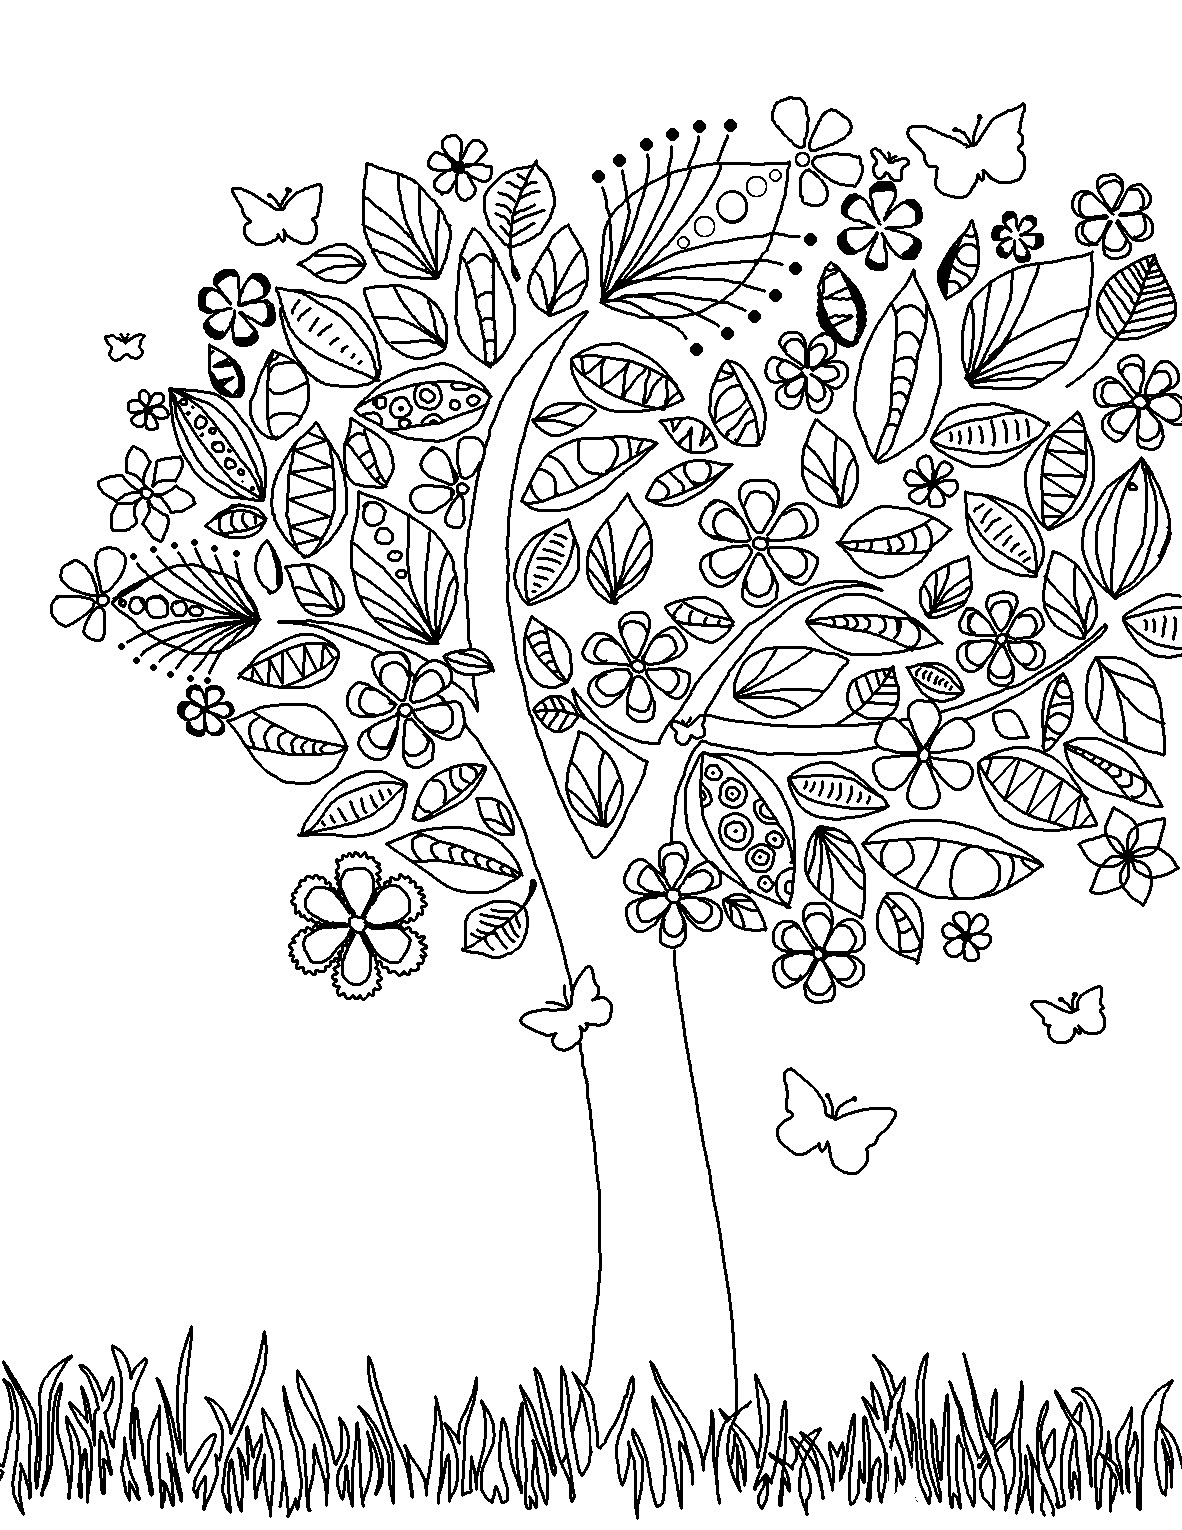 difficult coloring pages for teenagers hard coloring pages for adults best coloring pages for kids coloring teenagers difficult for pages